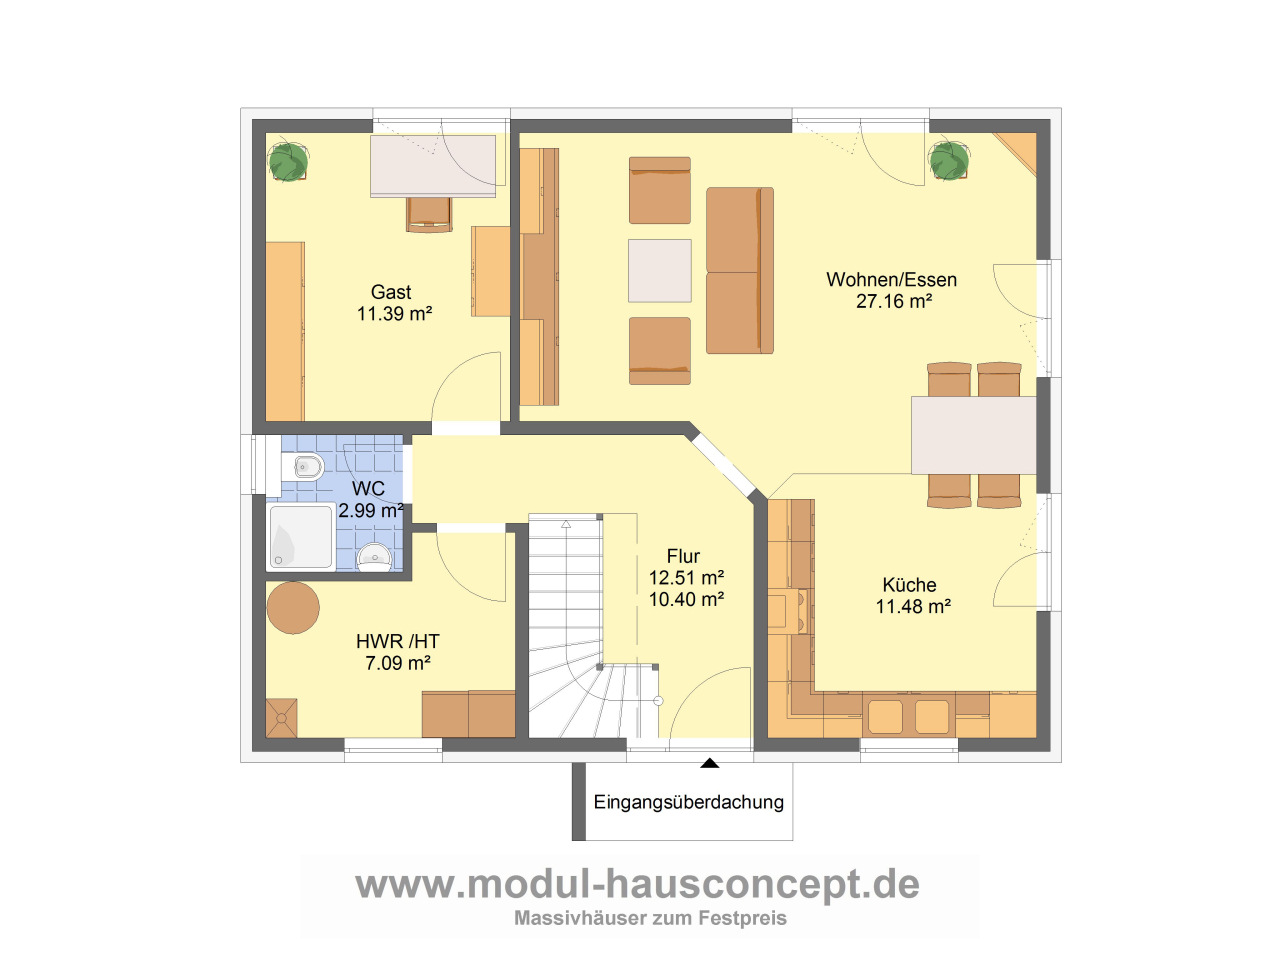 Bungalow 170 qm grundrisse grundriss bungalow 170 pictures to pin on